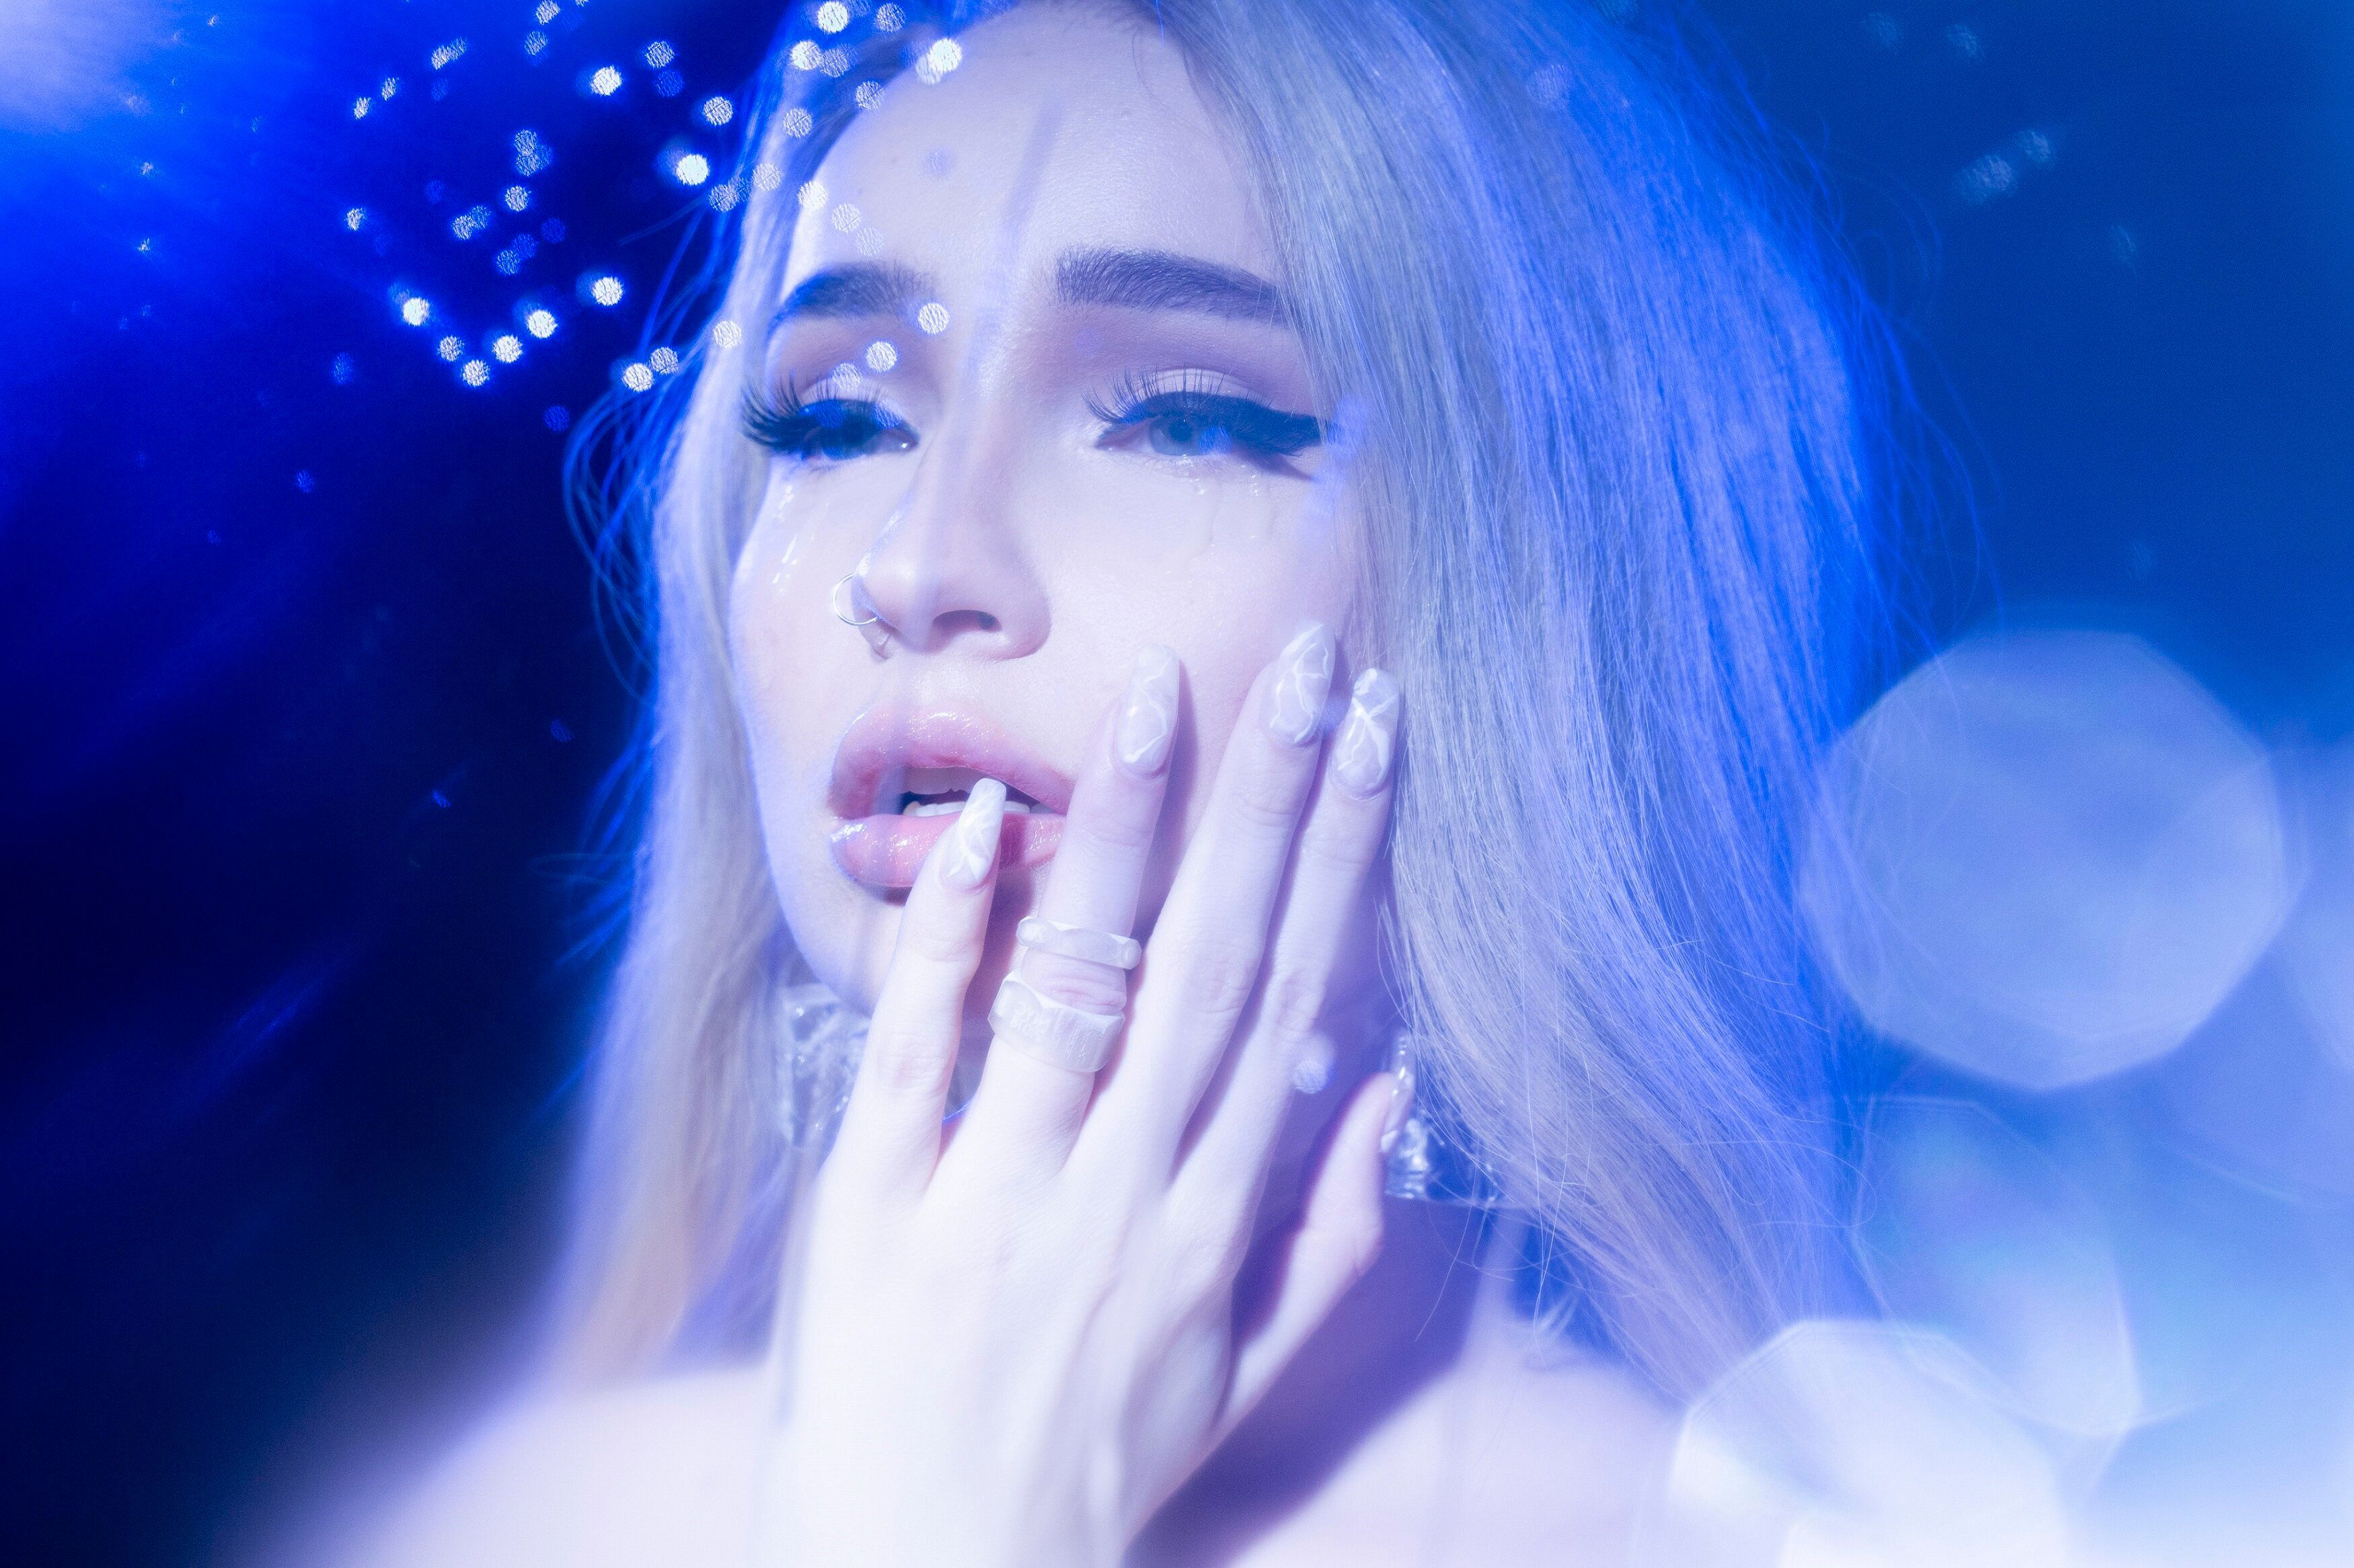 Kim Petras' Sad Bops Will Make You Want To Break Up With Your Boyfriend